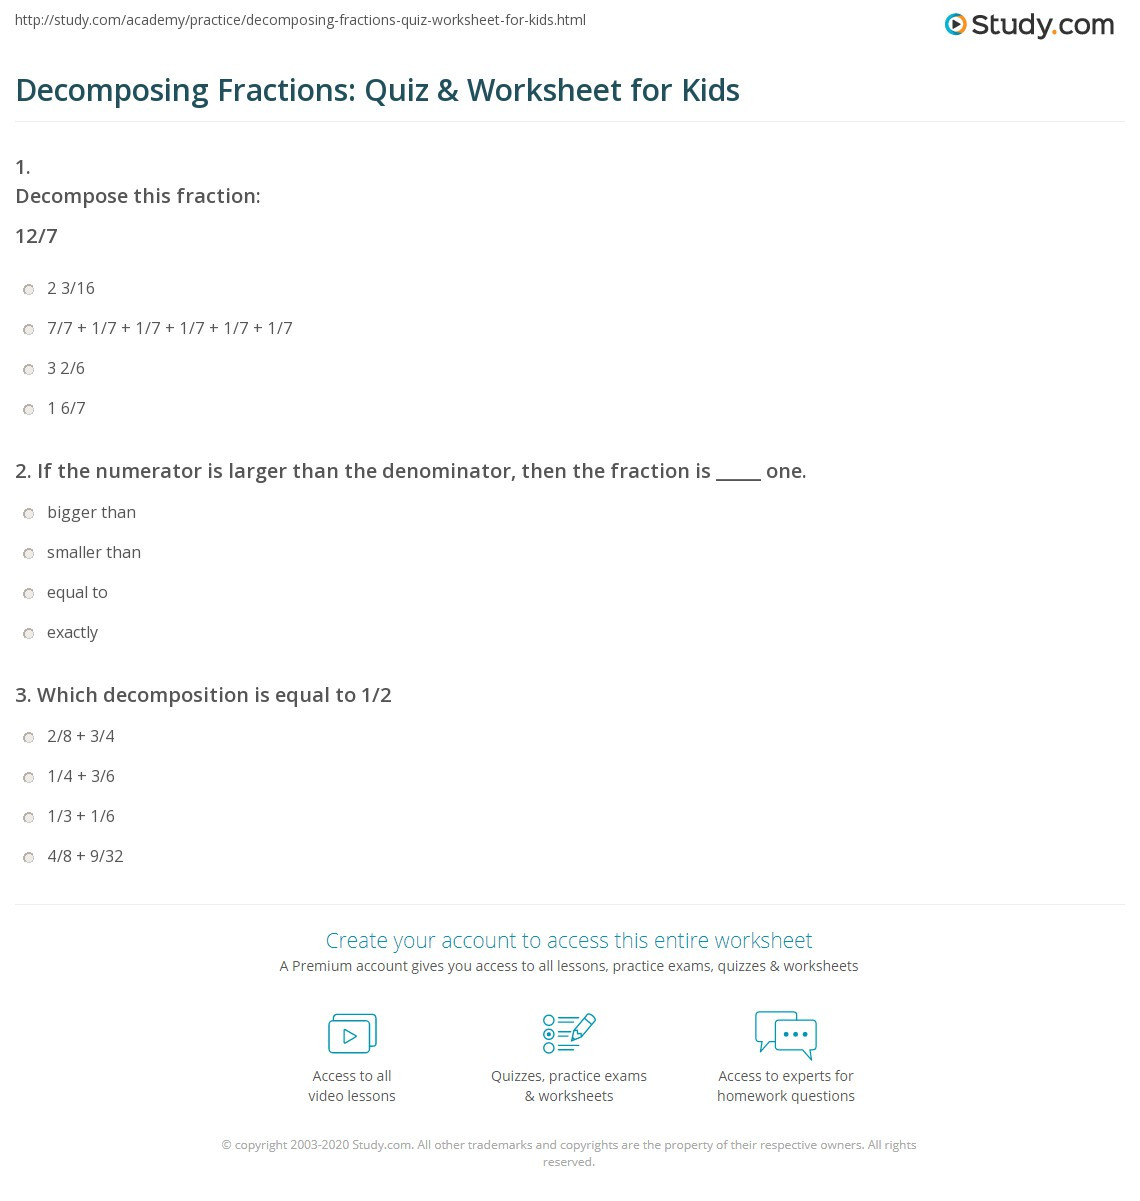 Decomposing Fractions Worksheets 4th Grade De Posing Fractions Worksheet